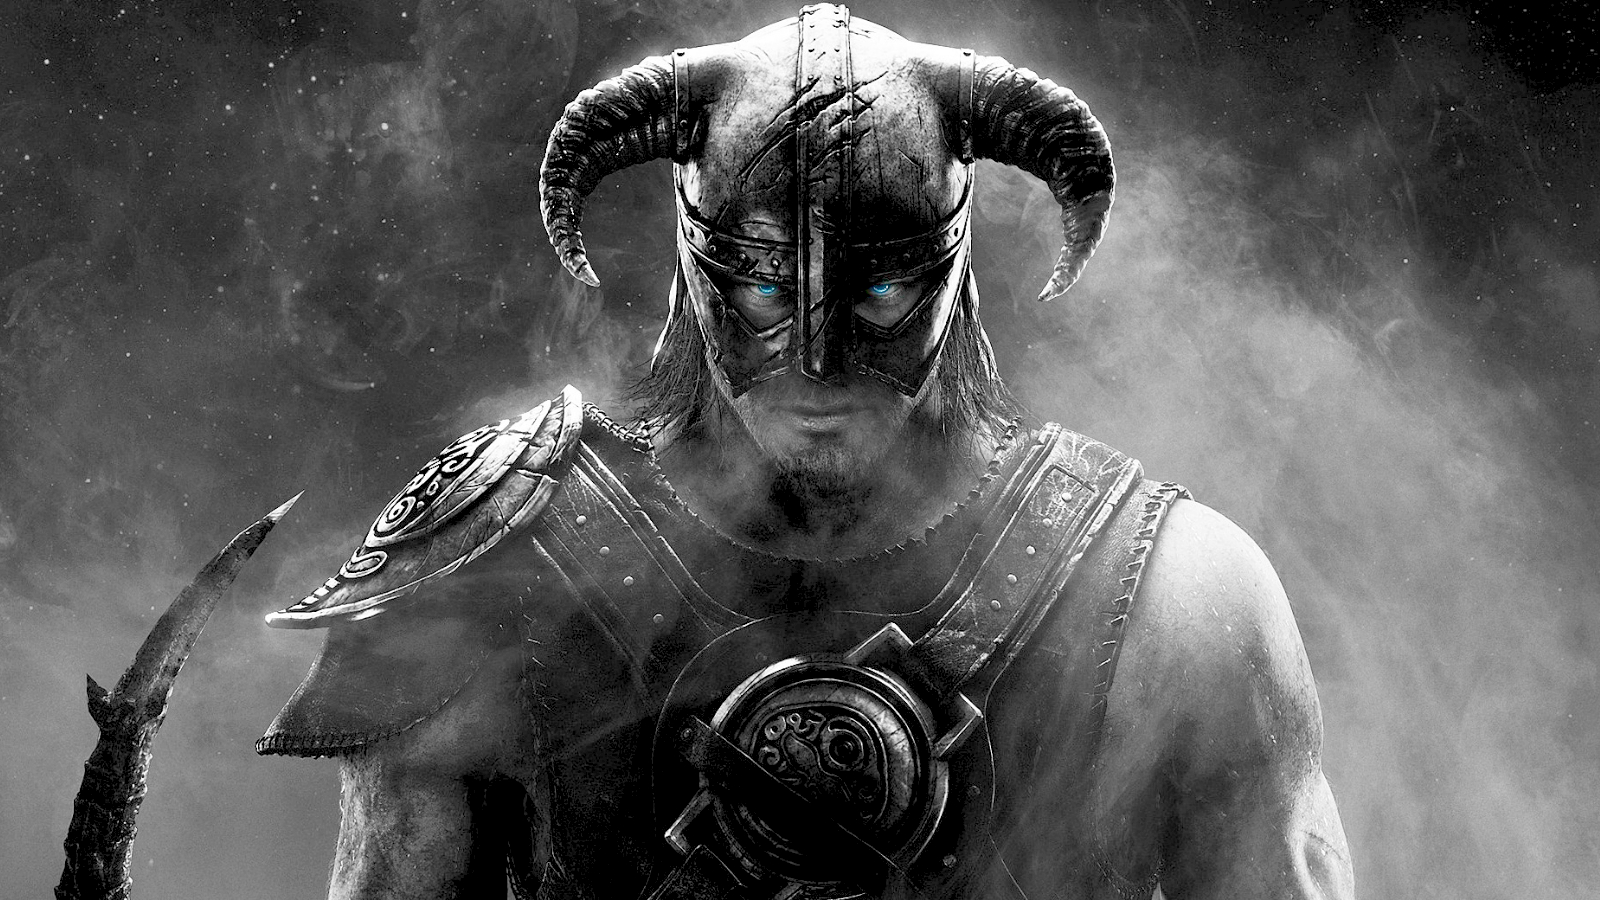 10 games like Skyrim that'll satisfy your need for adventure